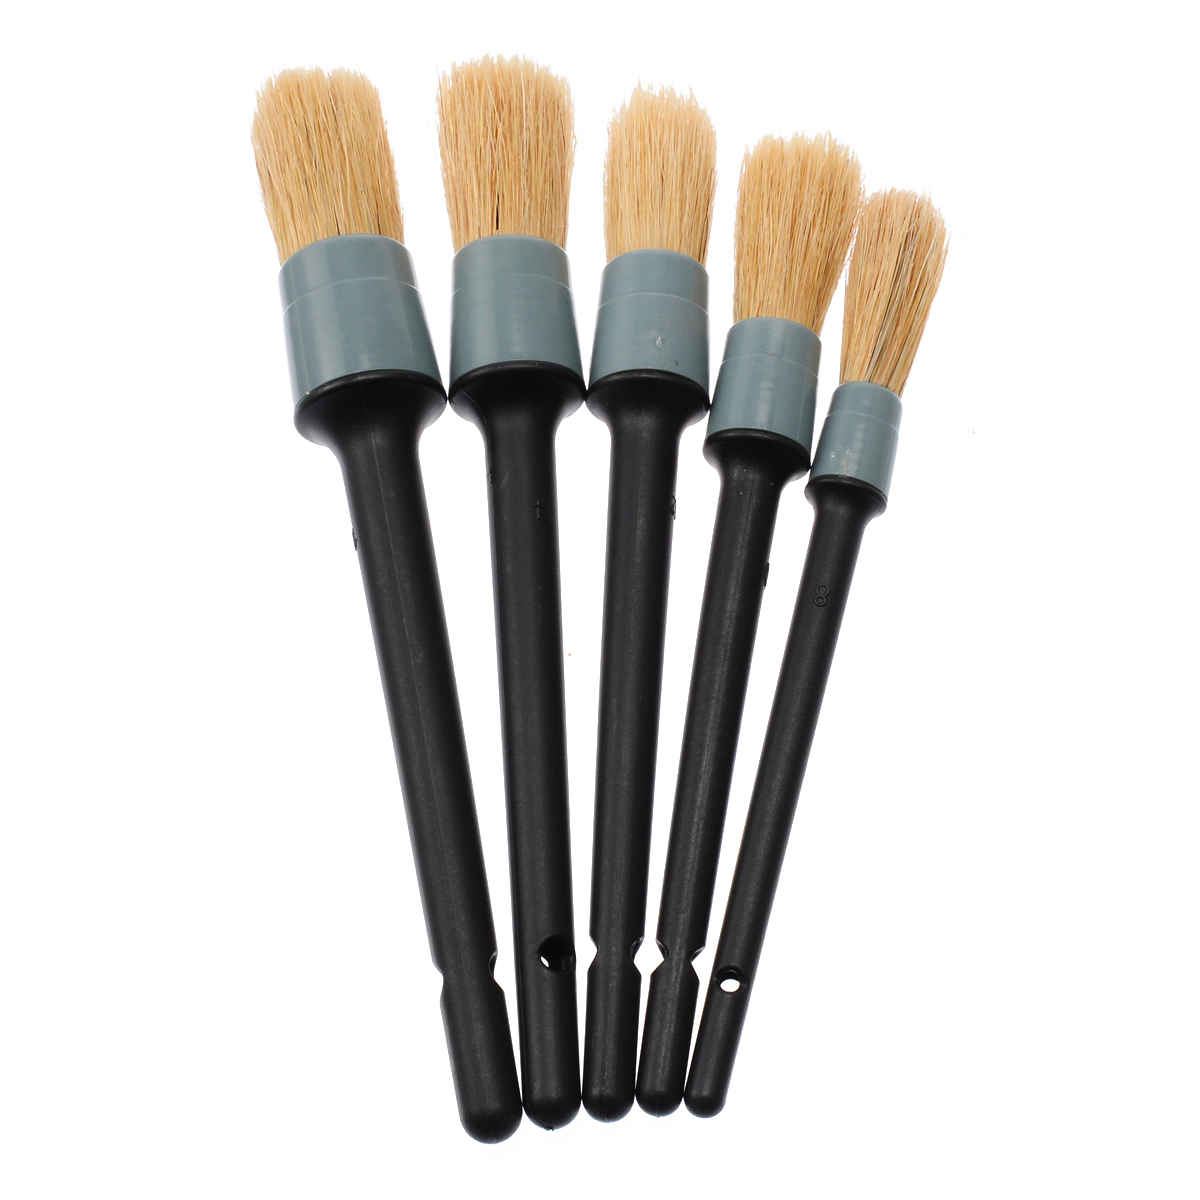 Image 5 - New Arrival 5pcs/set 5 Size Car Detailing Brush Cleaning Natural Boar Hair Brushes Auto Detail Tools-in Sponges, Cloths & Brushes from Automobiles & Motorcycles